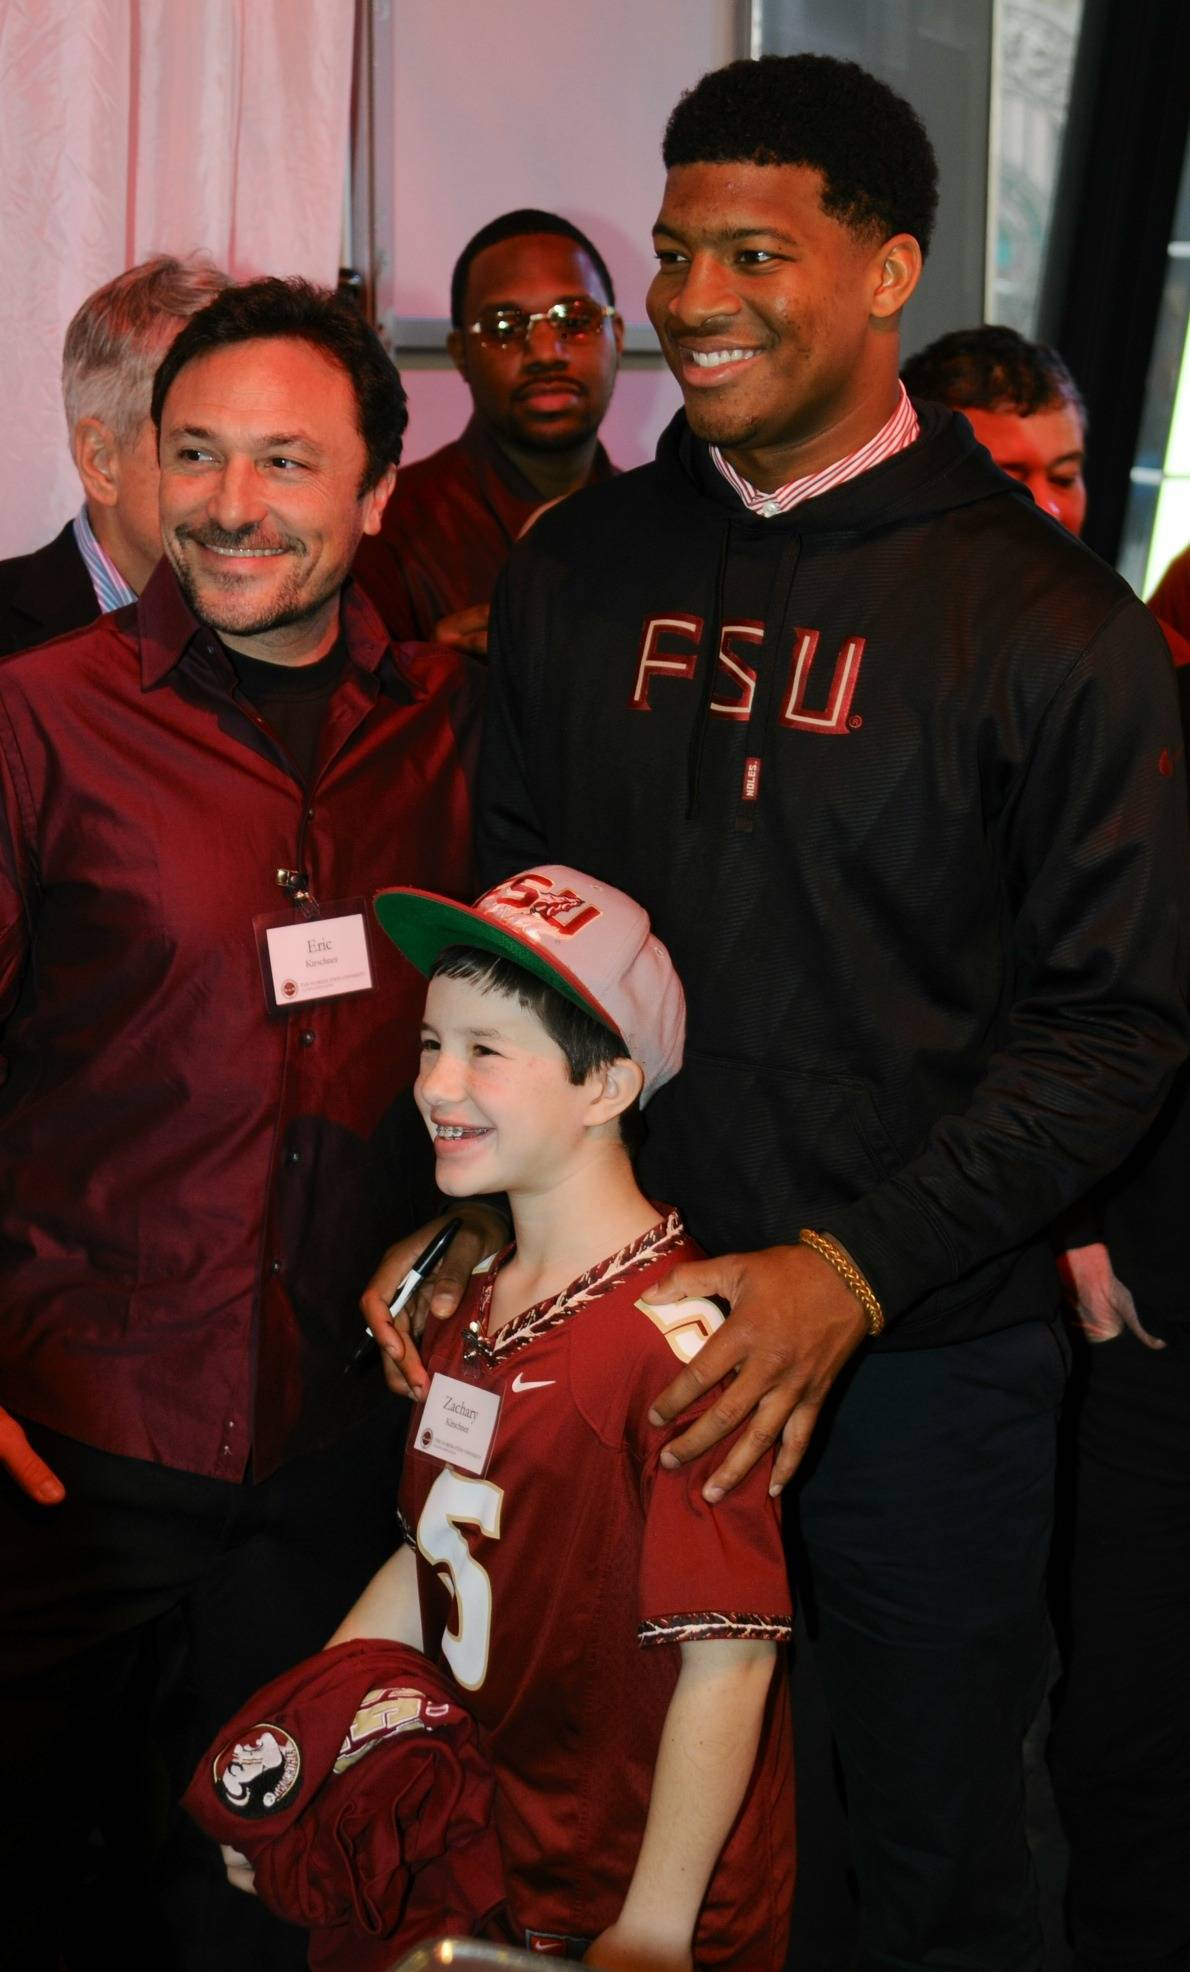 Jameis Winston poses for pictures with fans (Photo by Jeff Romance)